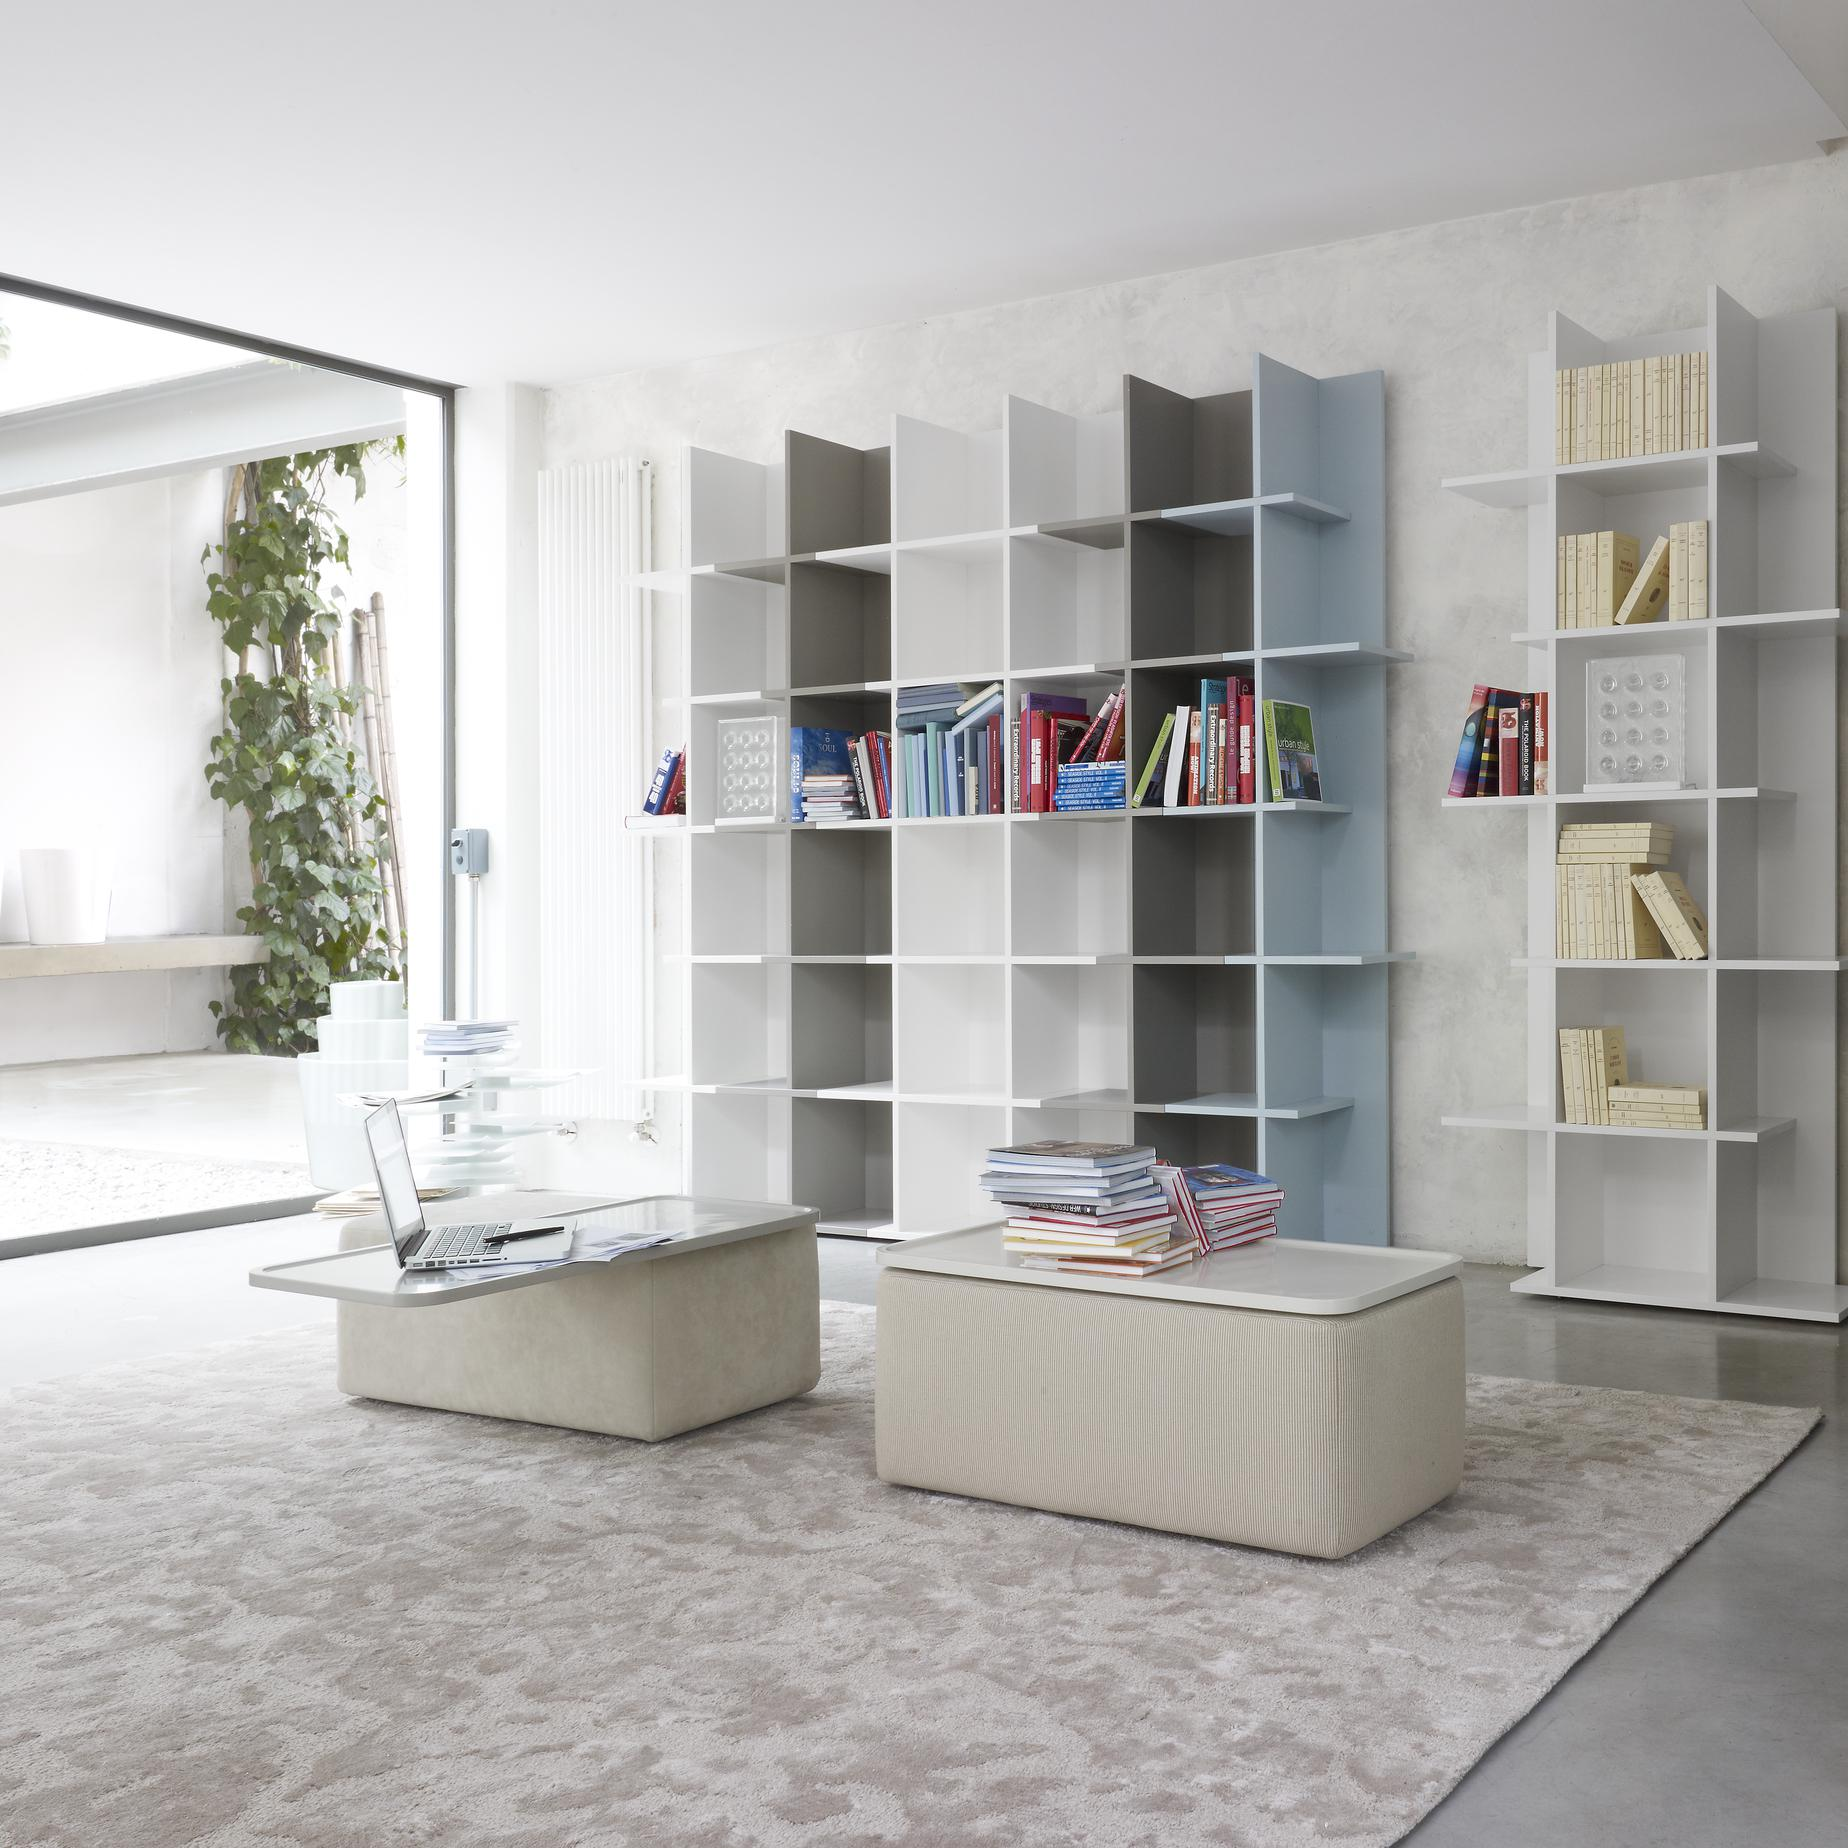 Home Office Library Design Ideas: Shelving From Designer : Kazuko Okamoto